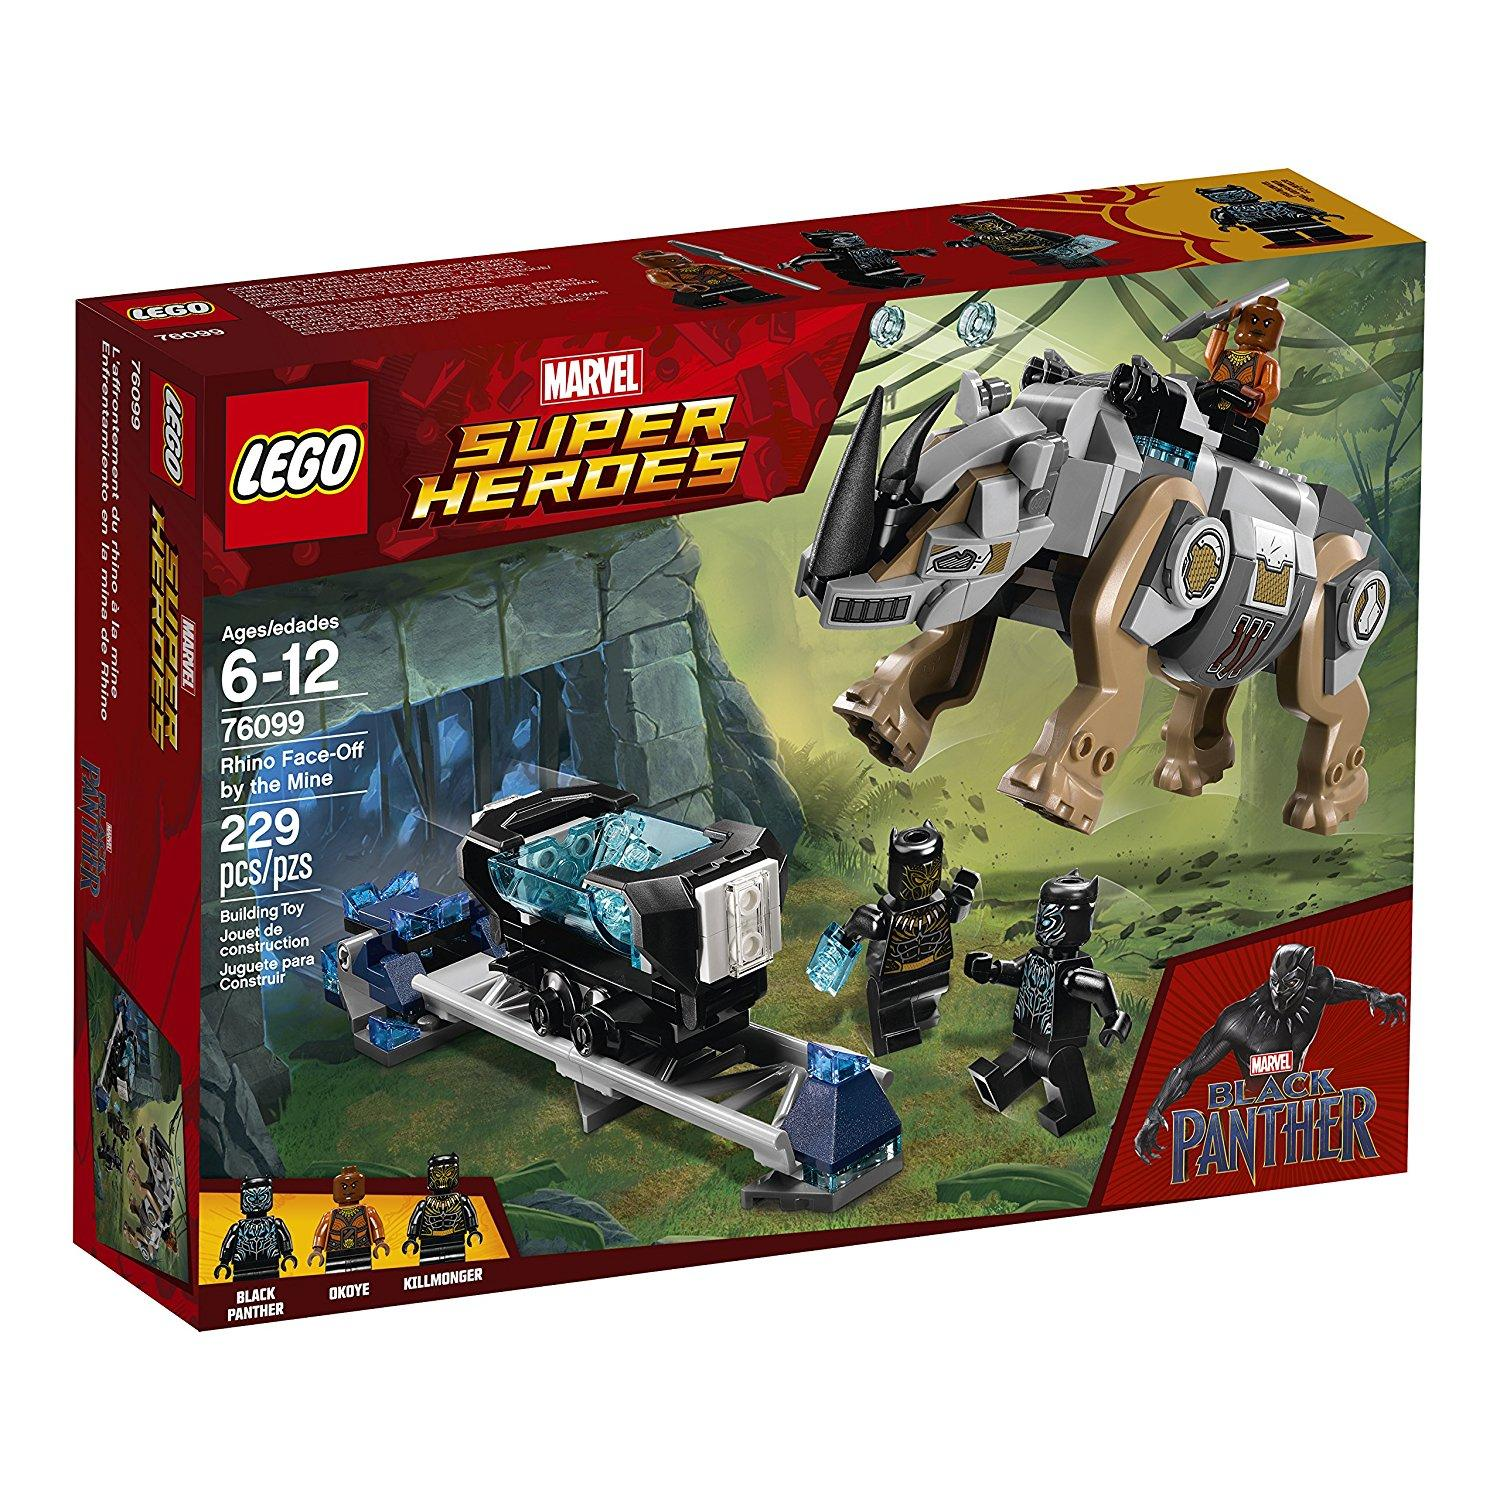 Lego Super Heroes Rhino Face-Off by the Mine (76099)